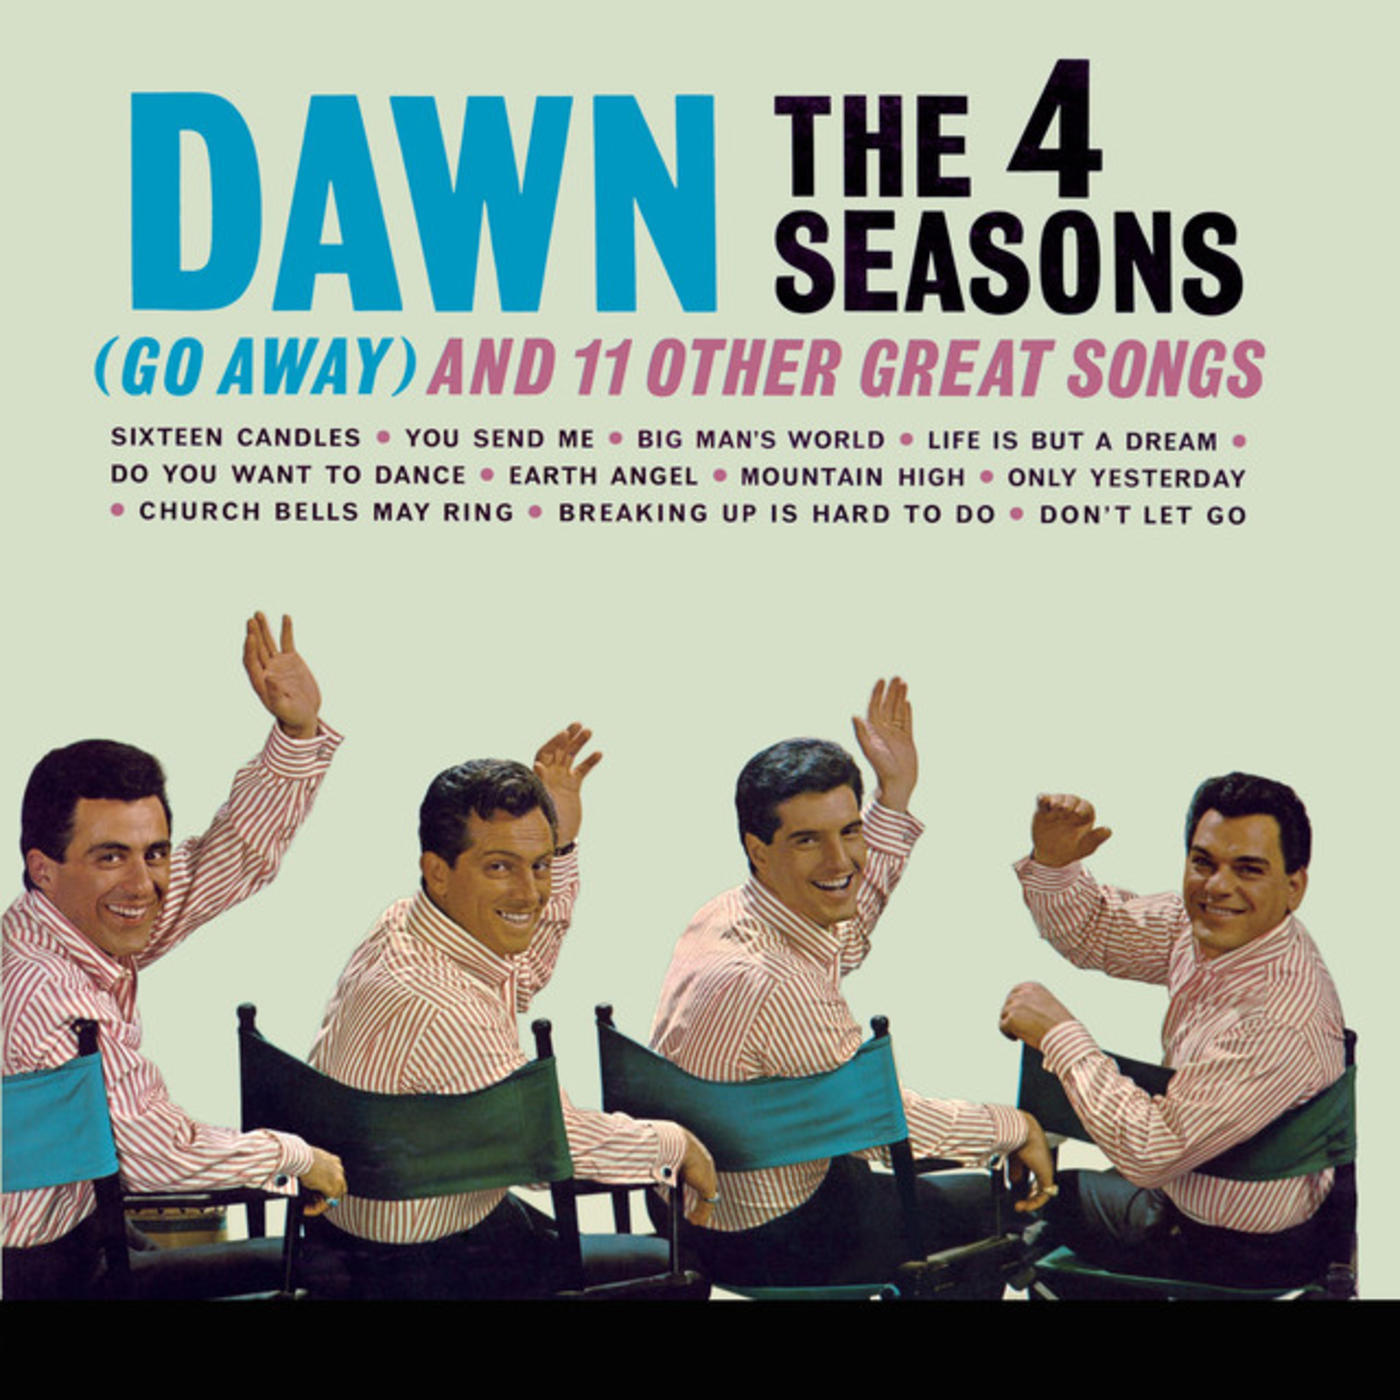 Dawn [Go Away] and 11 Other Hits